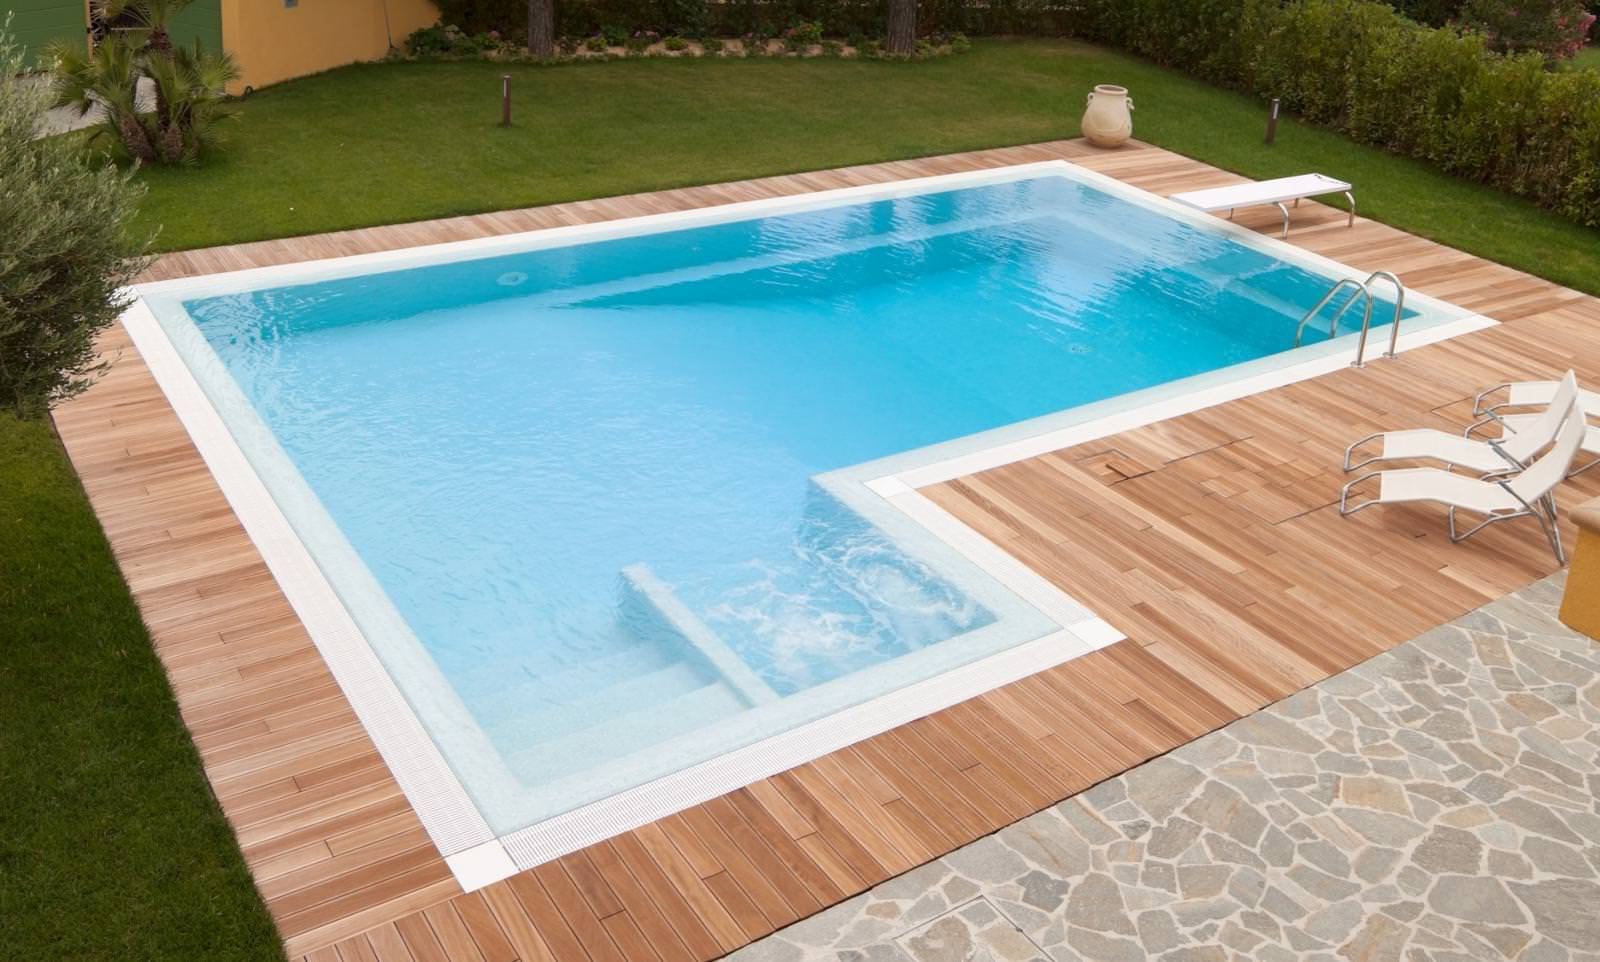 Best swimming pool designs outdoor designs design trends for Pool design trends 2016